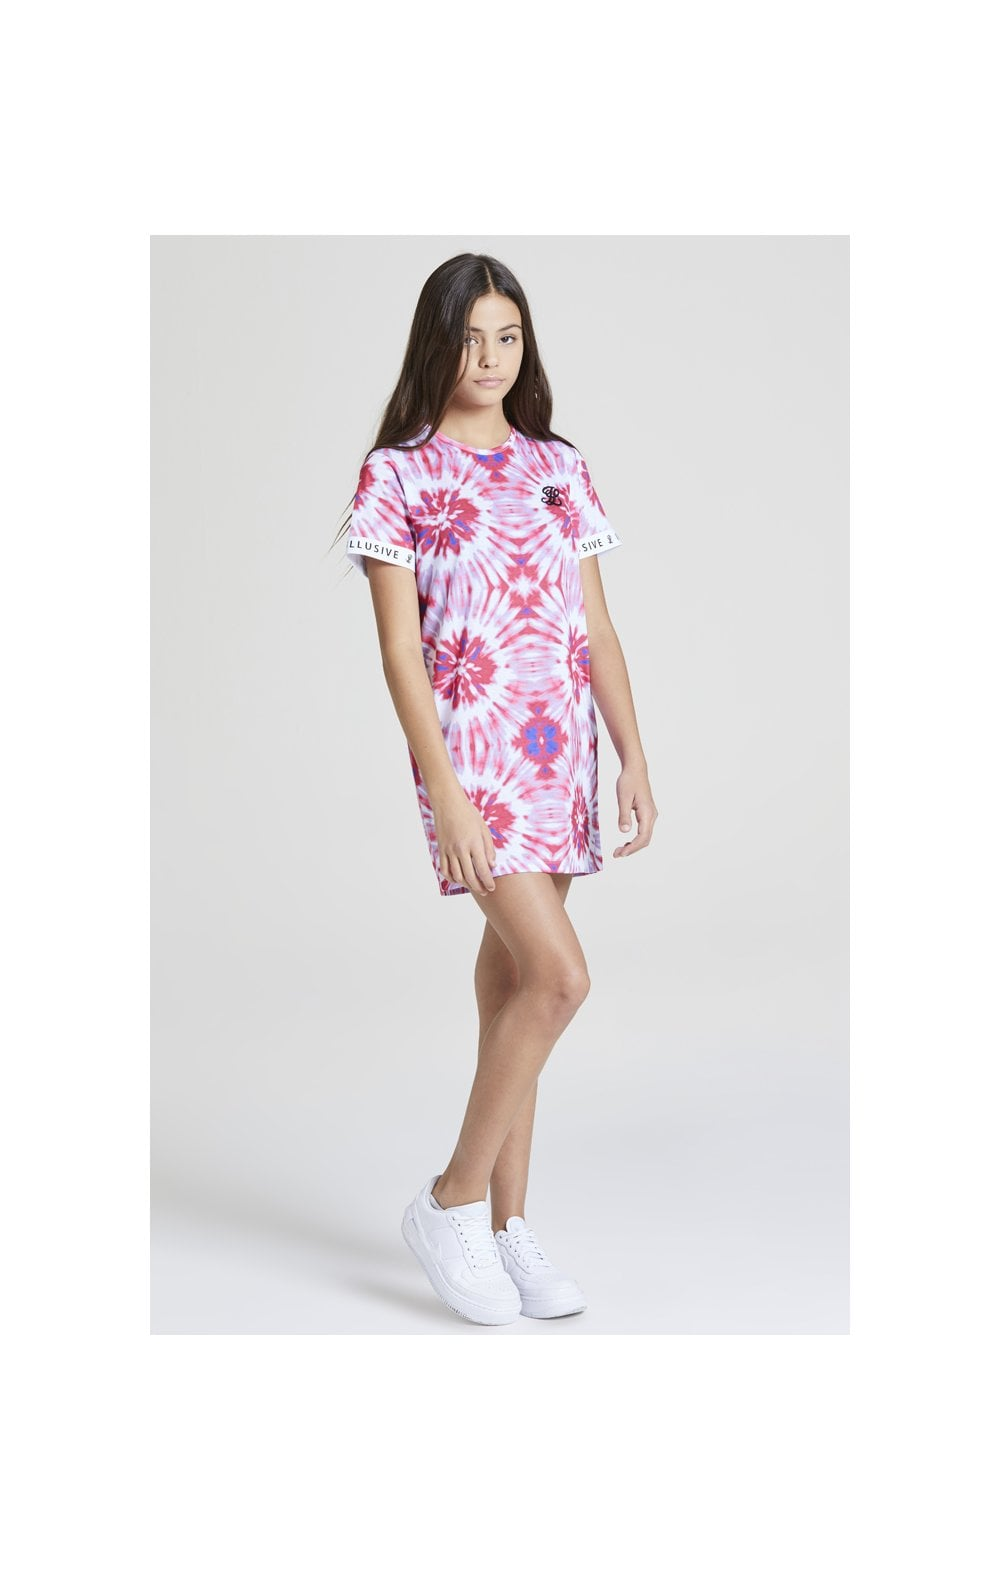 Load image into Gallery viewer, Illusive London Tie Dye T-Shirt Dress - Multi (3)